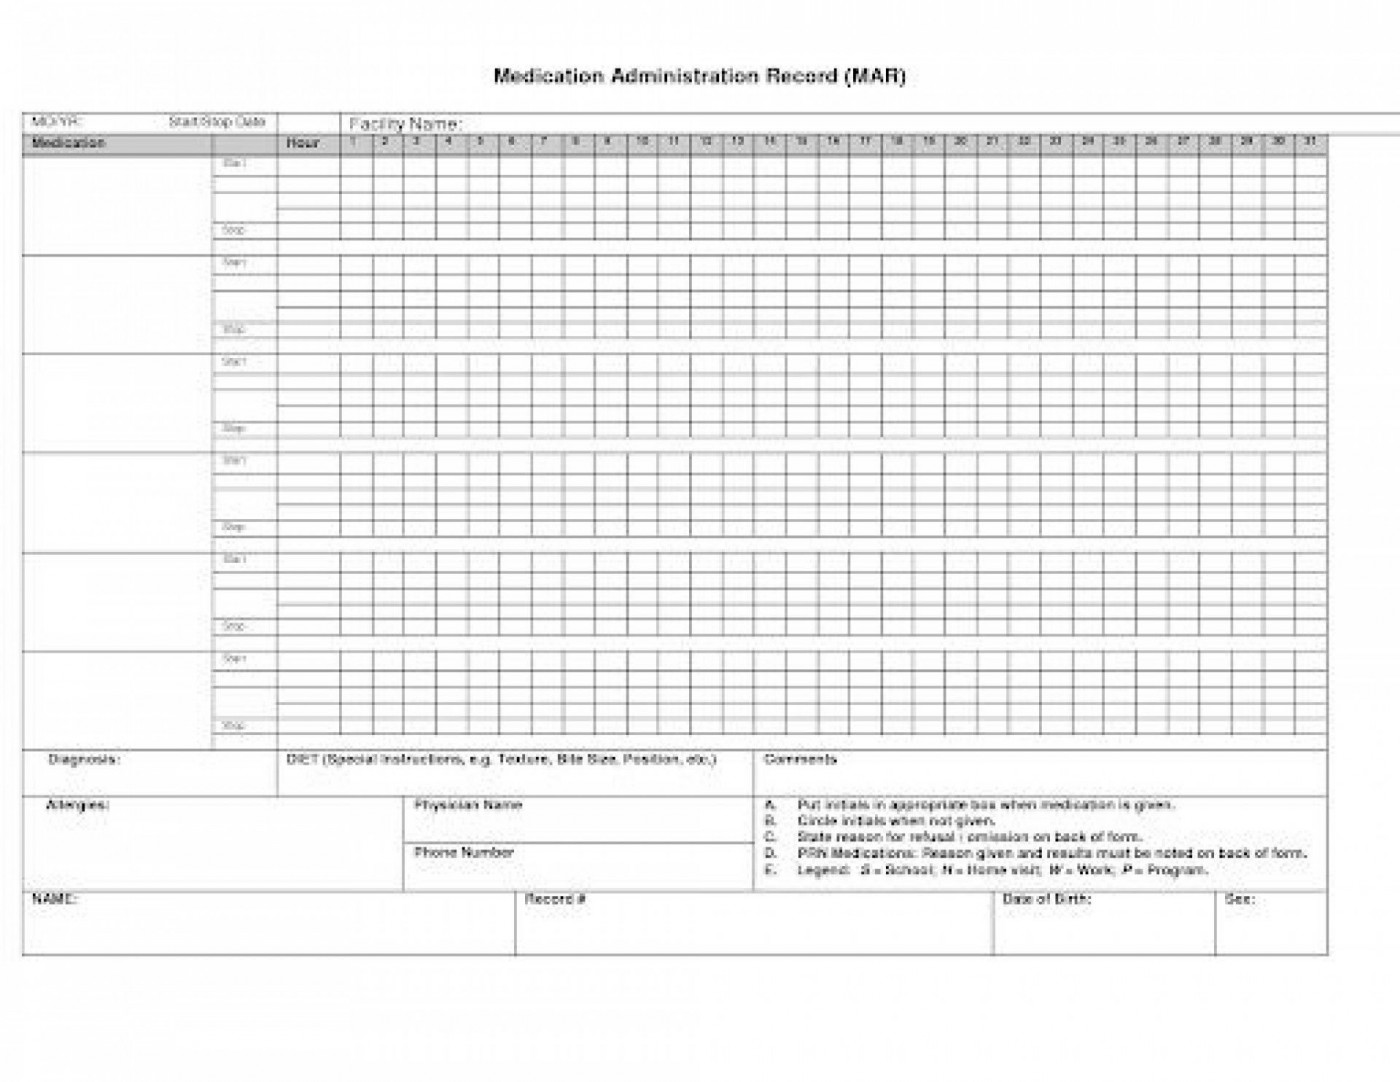 007 Simple Medication Administration Record Form Download High Def 1400